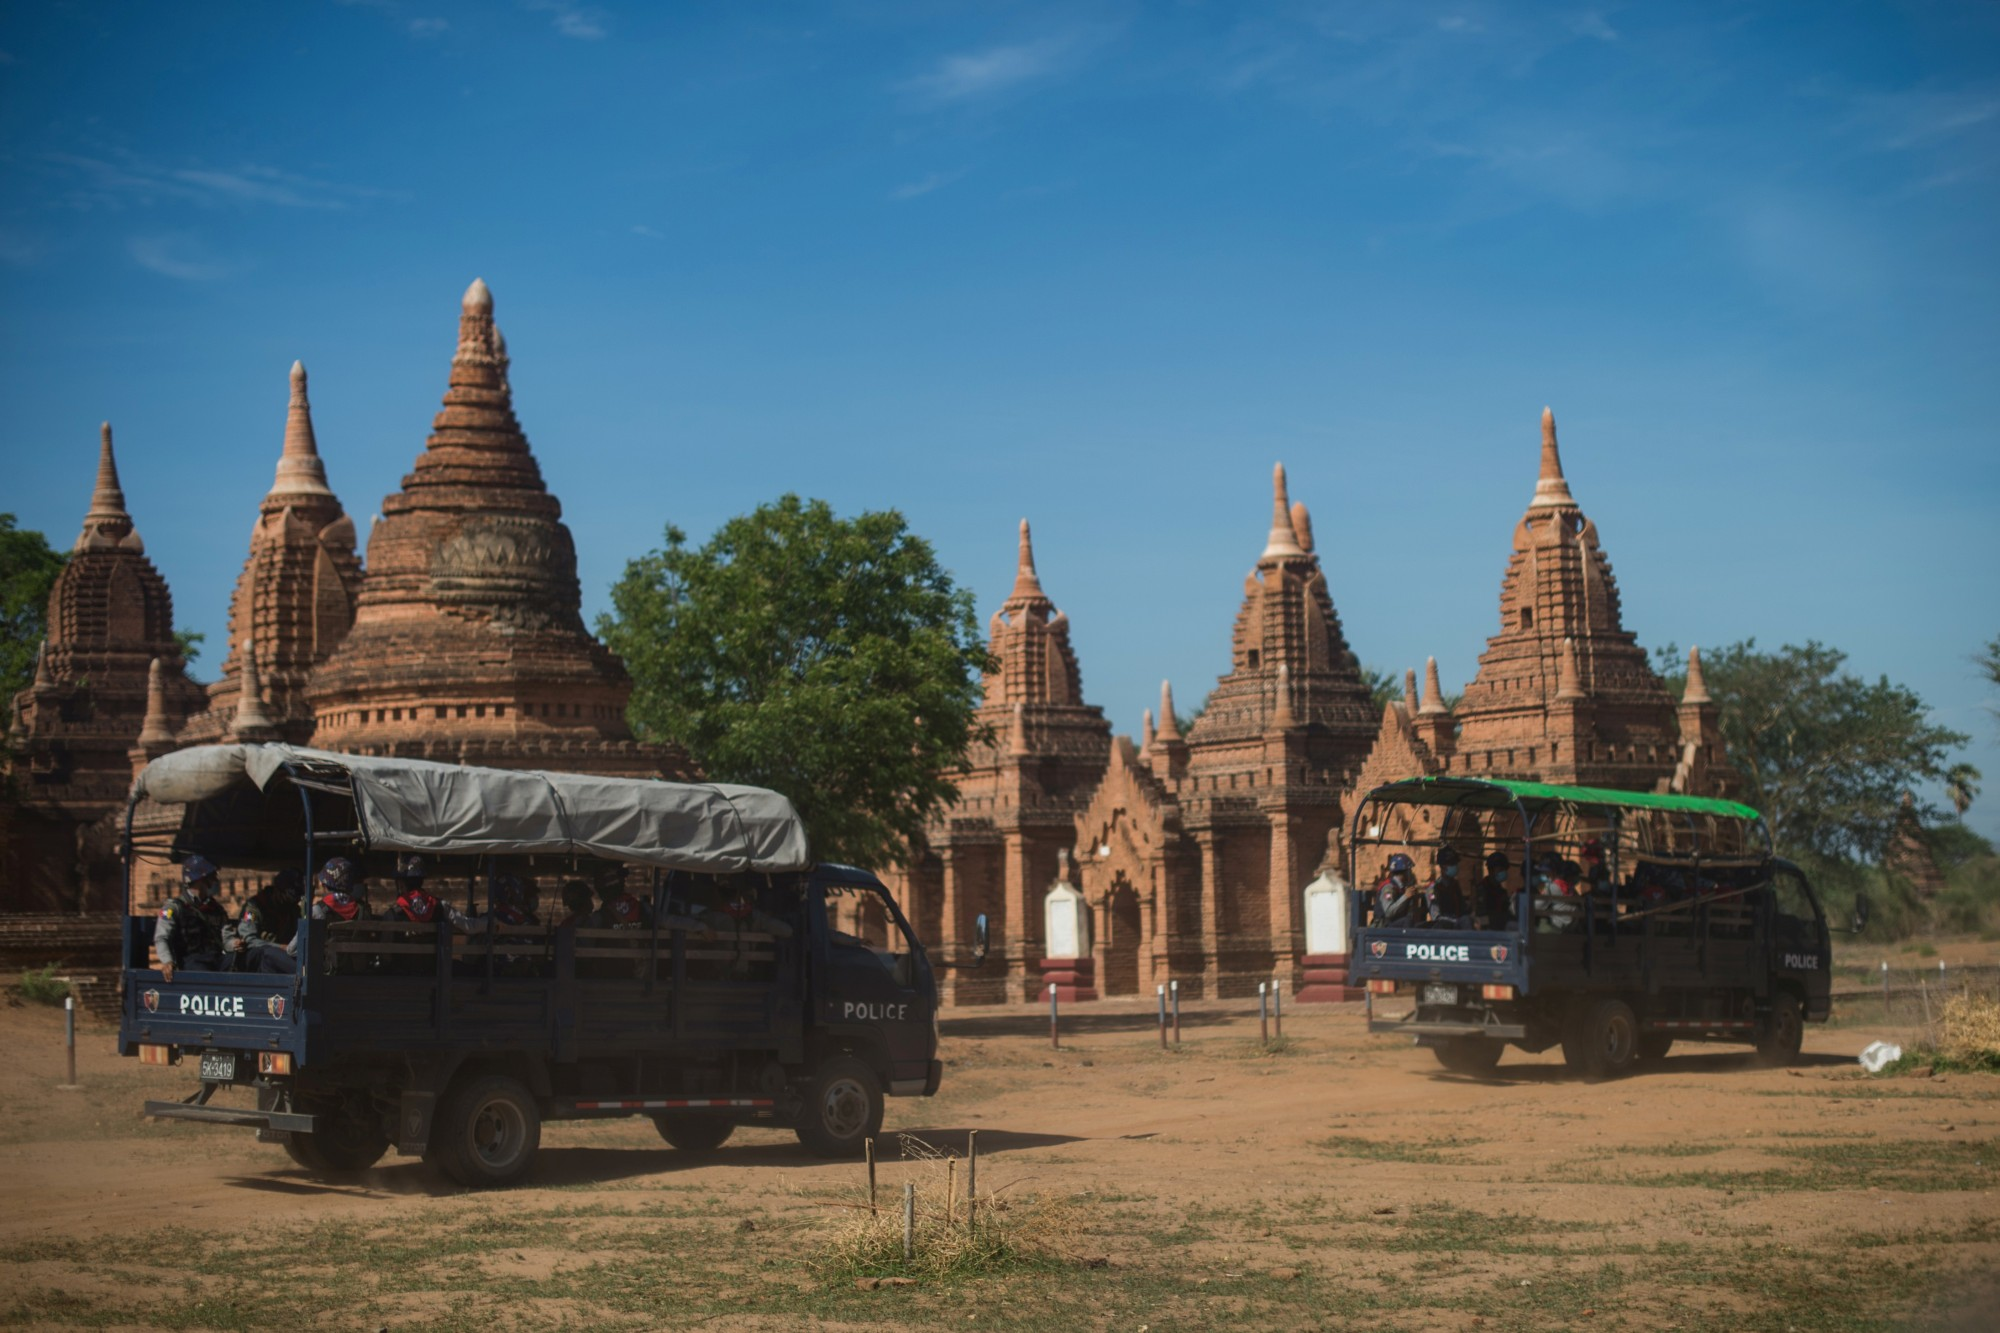 Burma : the tomb-temples invest Bagan, empty of tourists